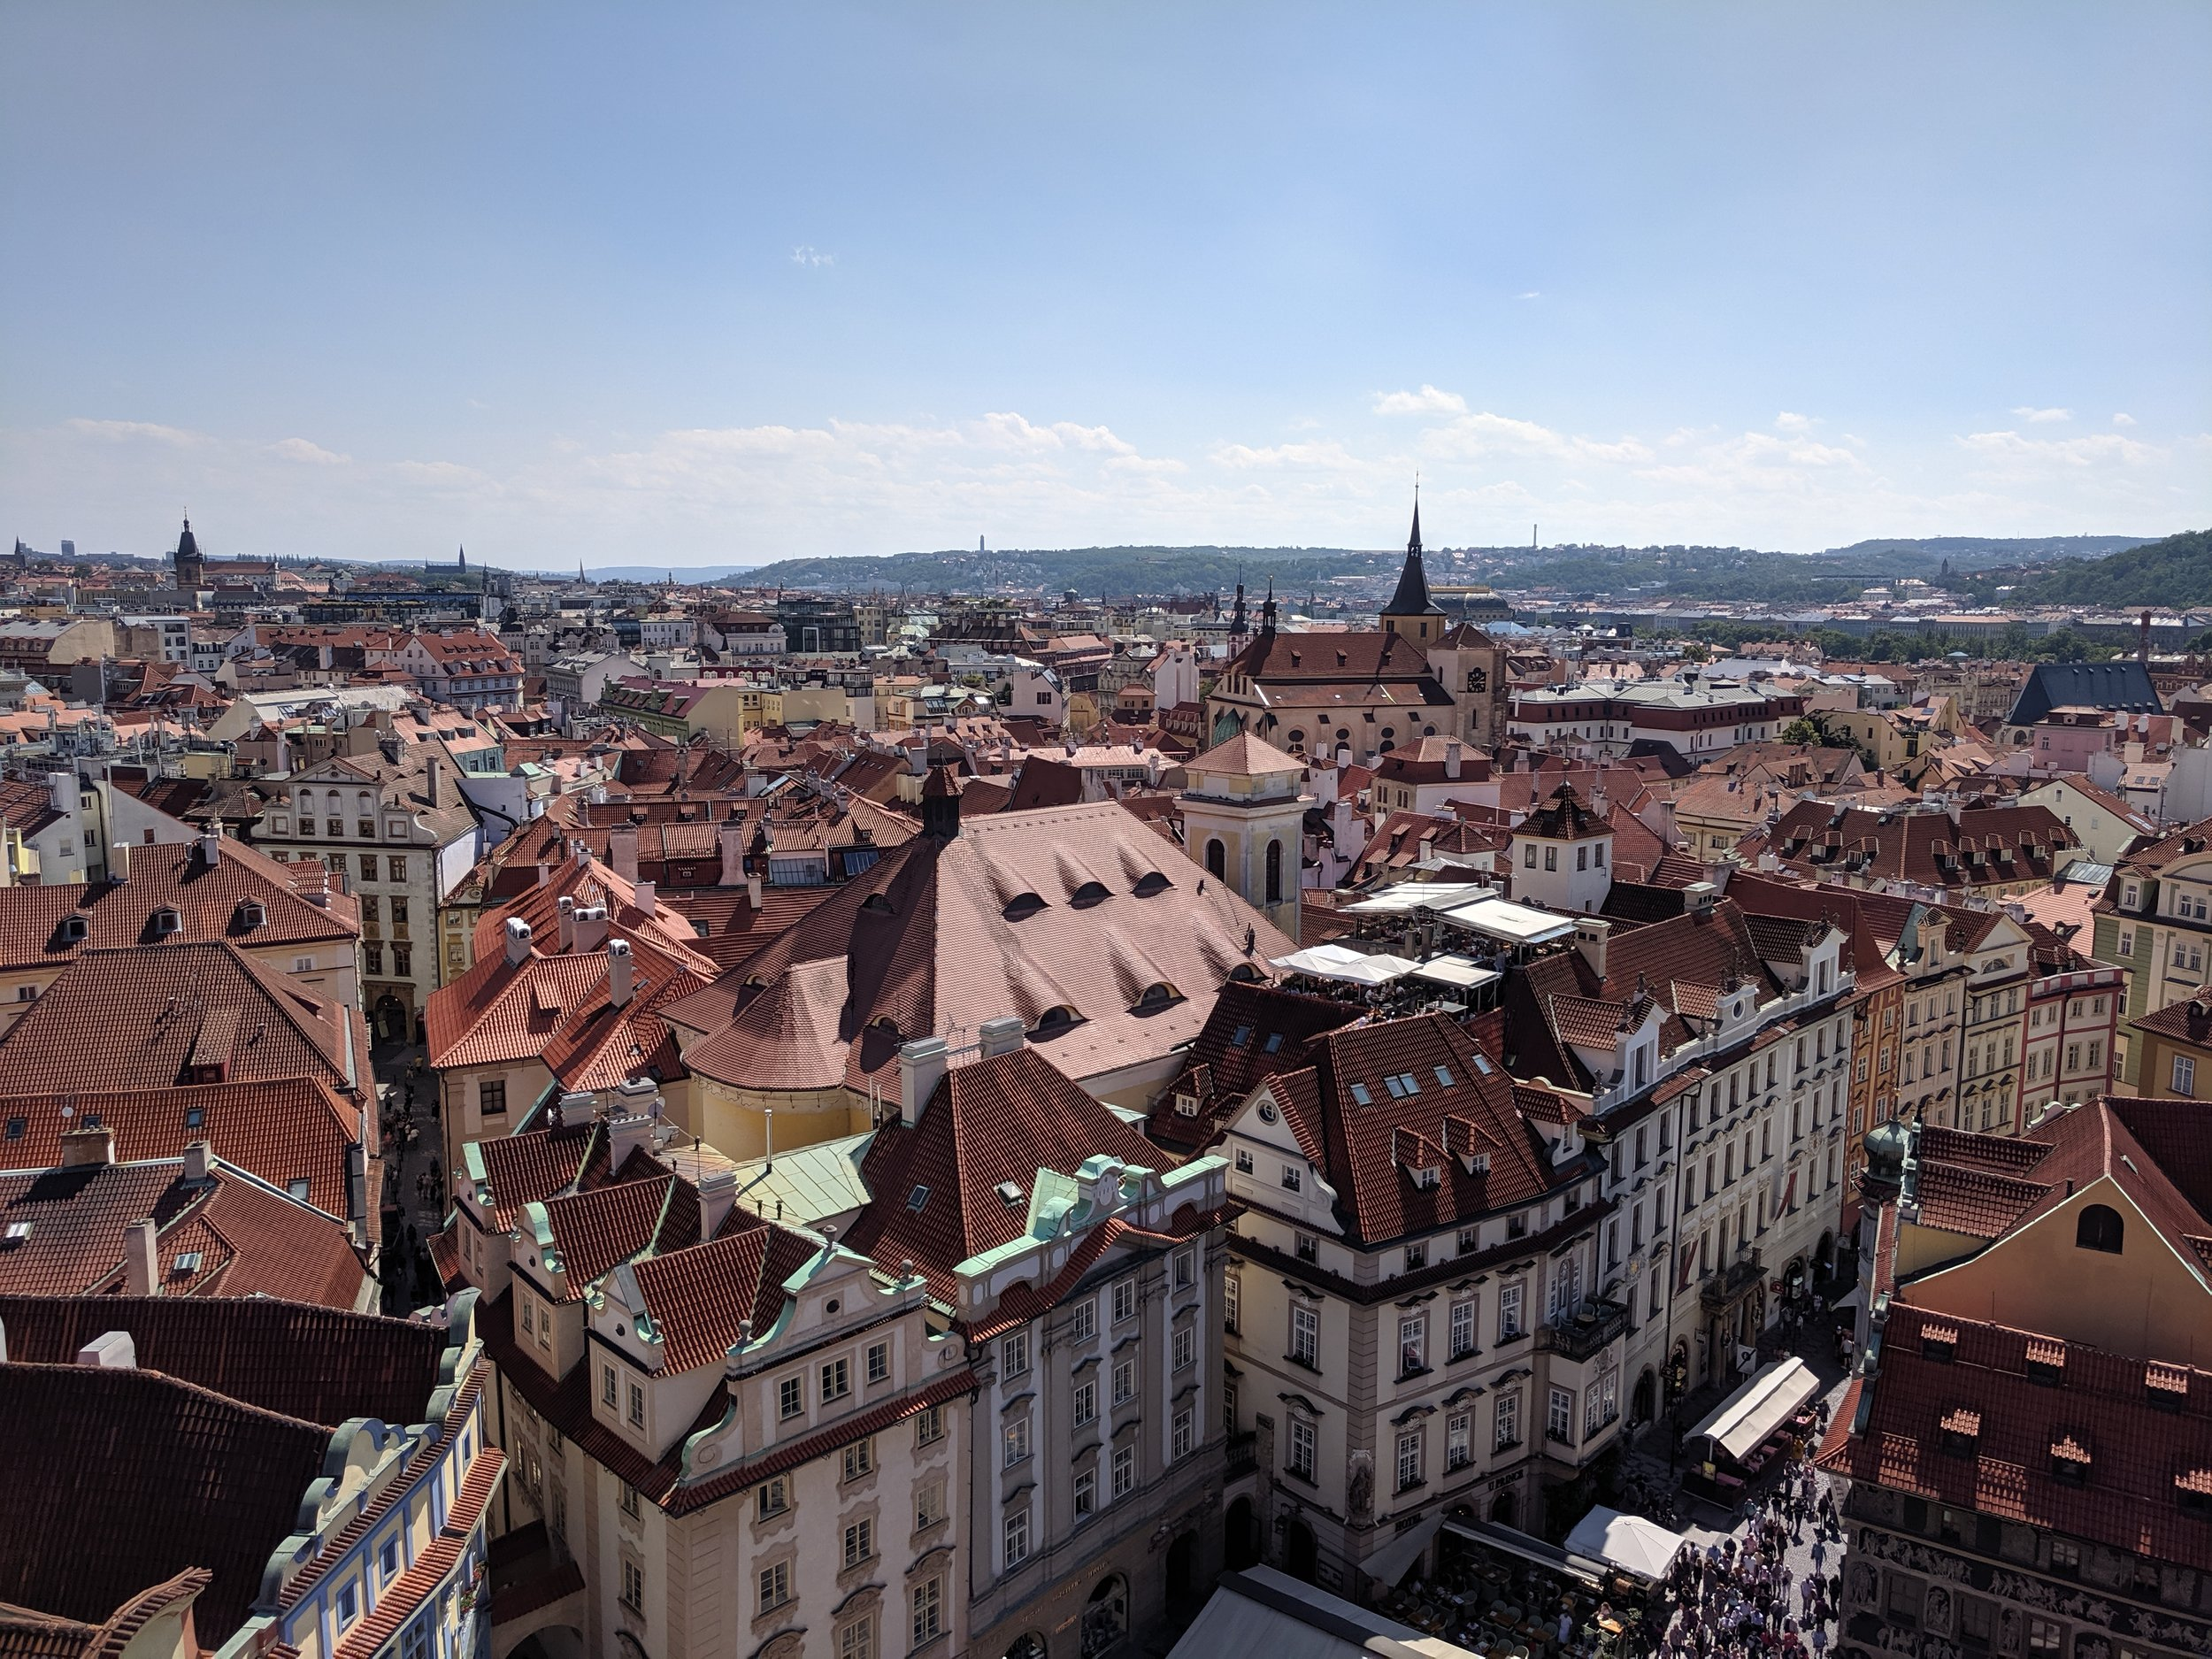 Bewitching view of Prague Old Town from atop the Town Hall where the astronomical clock chimes.